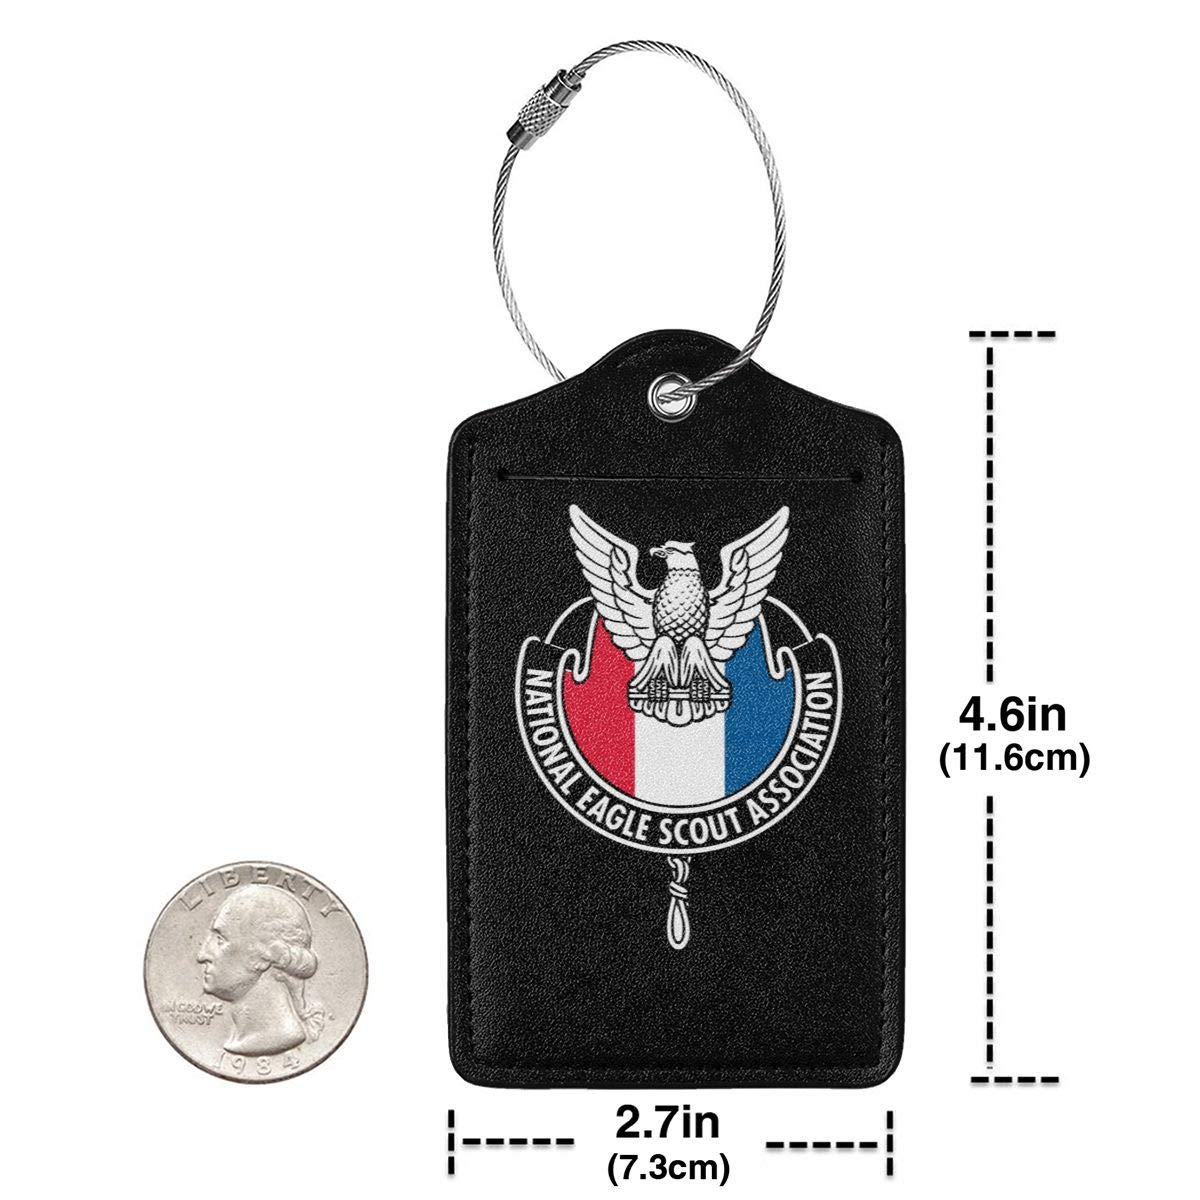 National Eagle Scout Association Leather Luggage Tag Travel ID Label For Baggage Suitcase